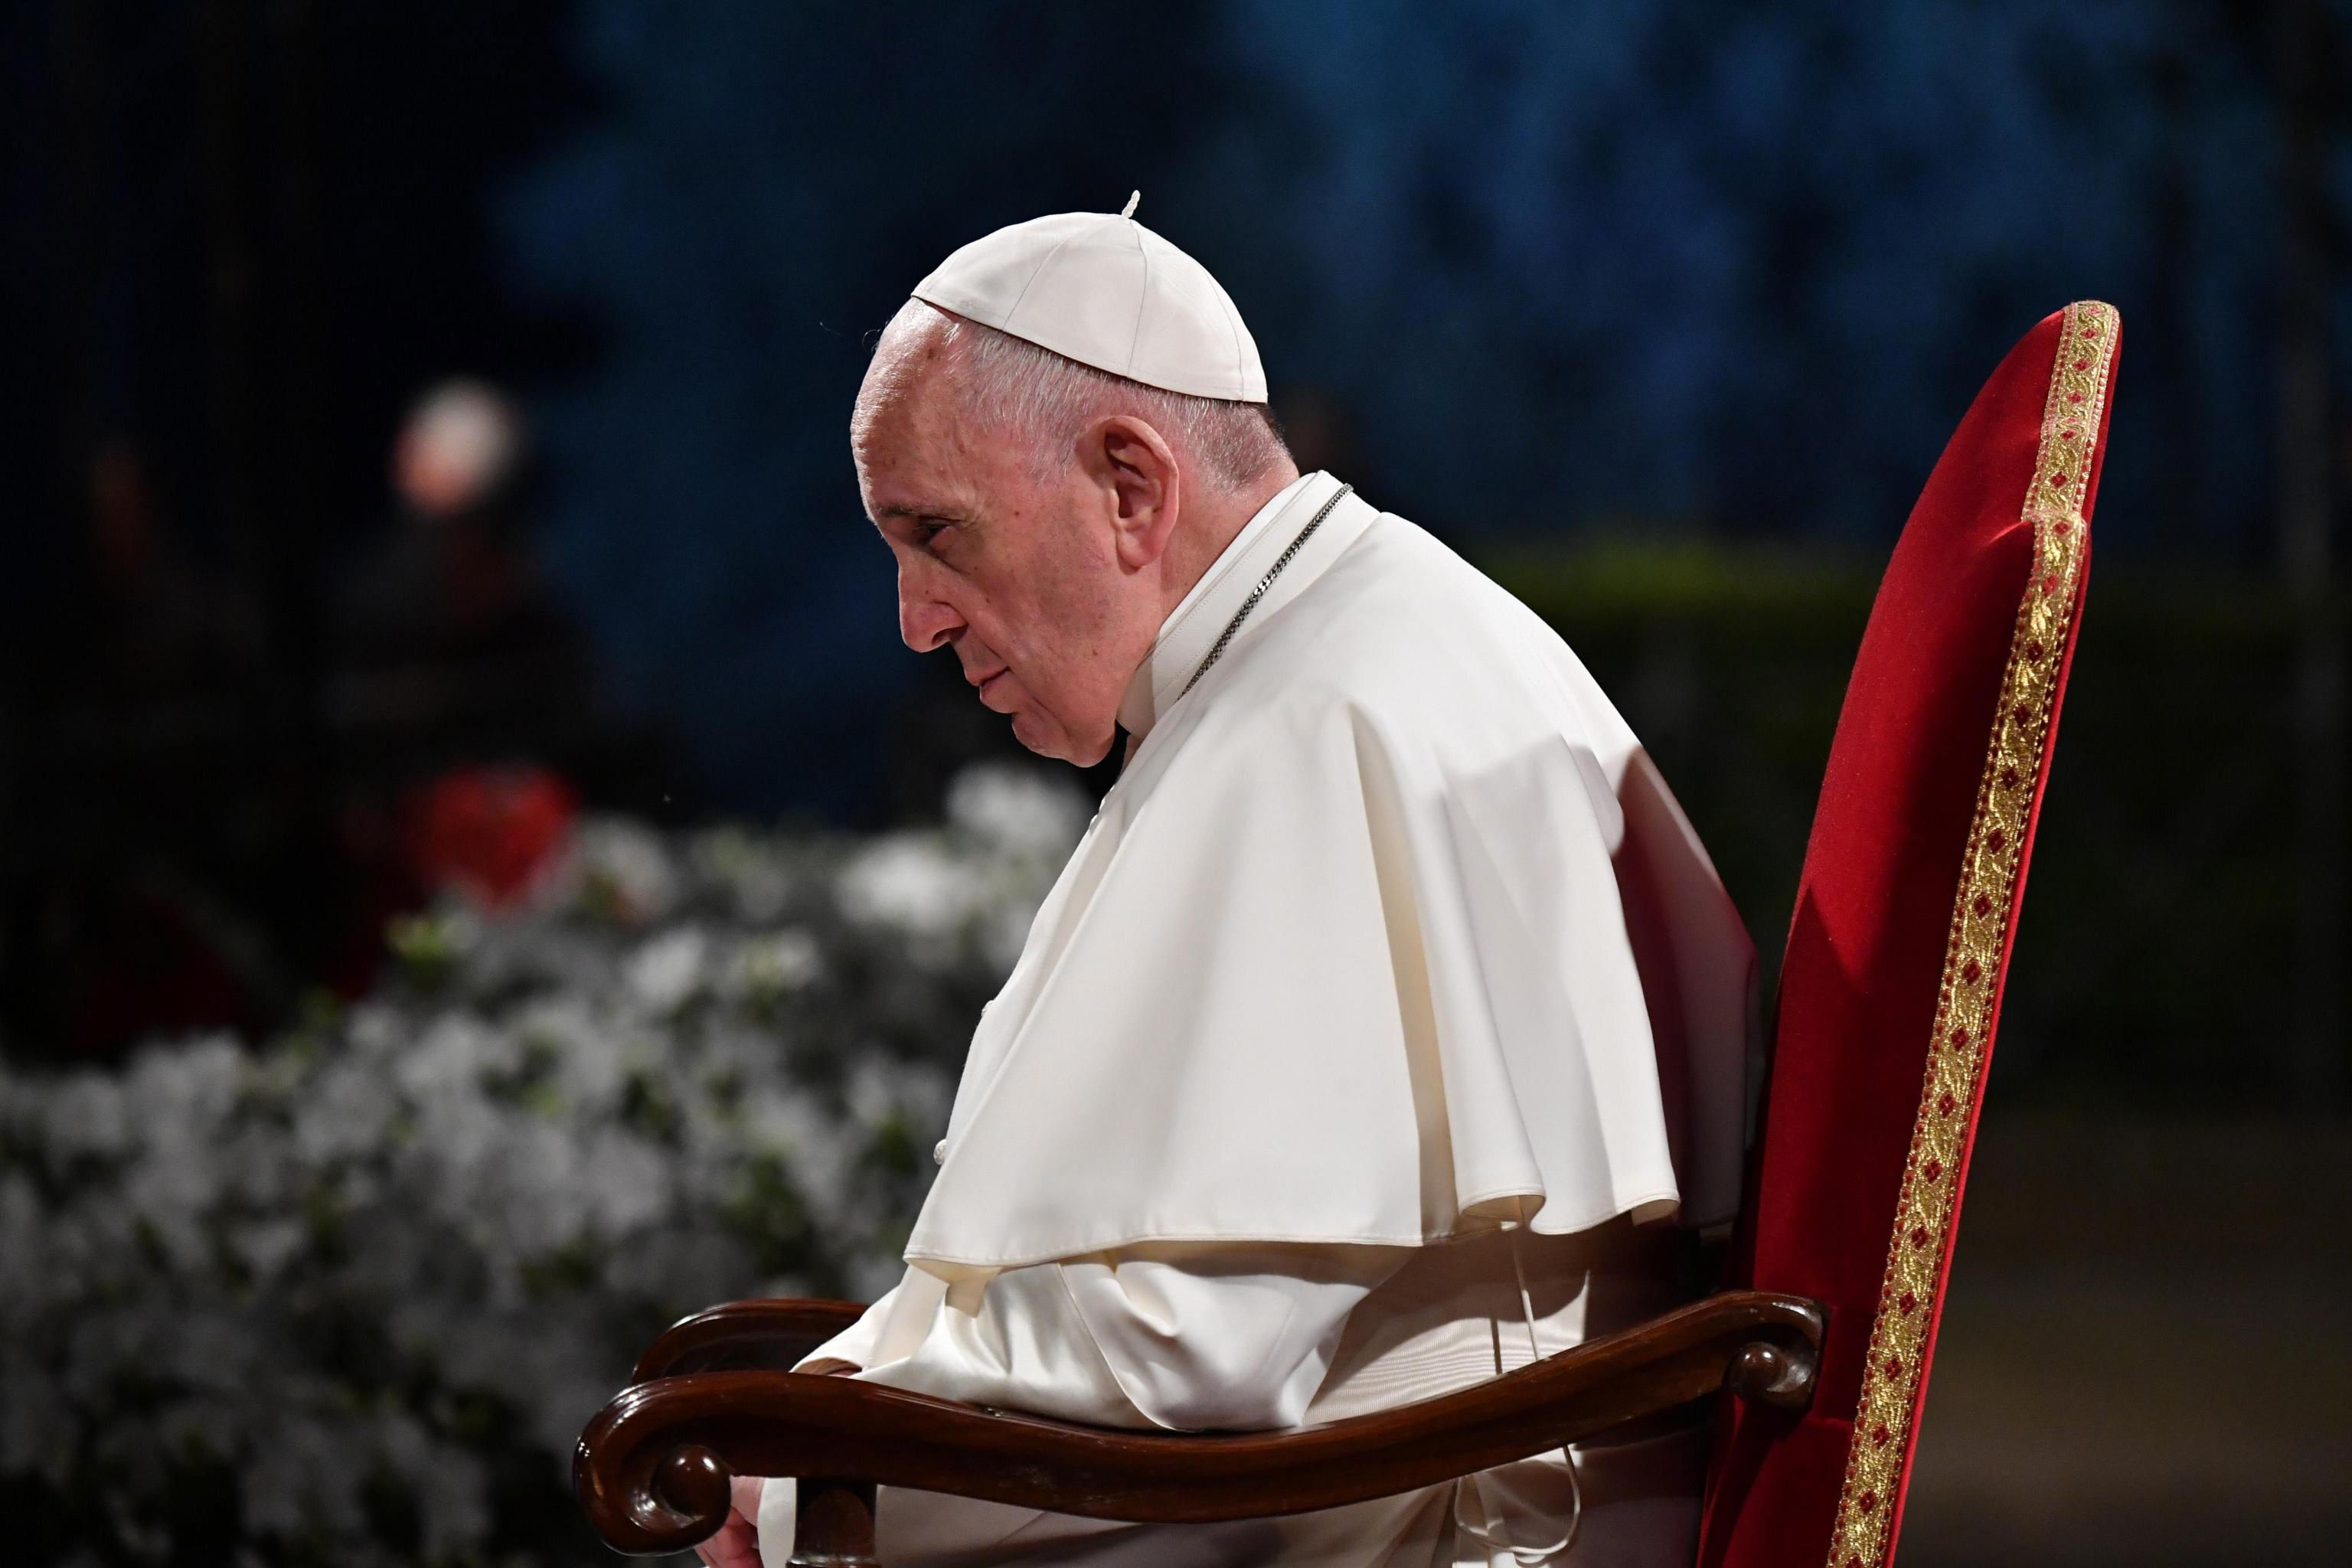 Rome (Italy), 19/04/2019.- Pope Francis presides the Via Crucis (Way of the Cross) torchlight procession on the Good Friday in front of ancient Colosseum in Rome, Italy, 19 April 2019. Good Friday is observed by Christians around the world to commemorate the crucifixion of Jesus Christ. (Papa, Italia, Roma) EFE/EPA/ALESSANDRO DI MEO